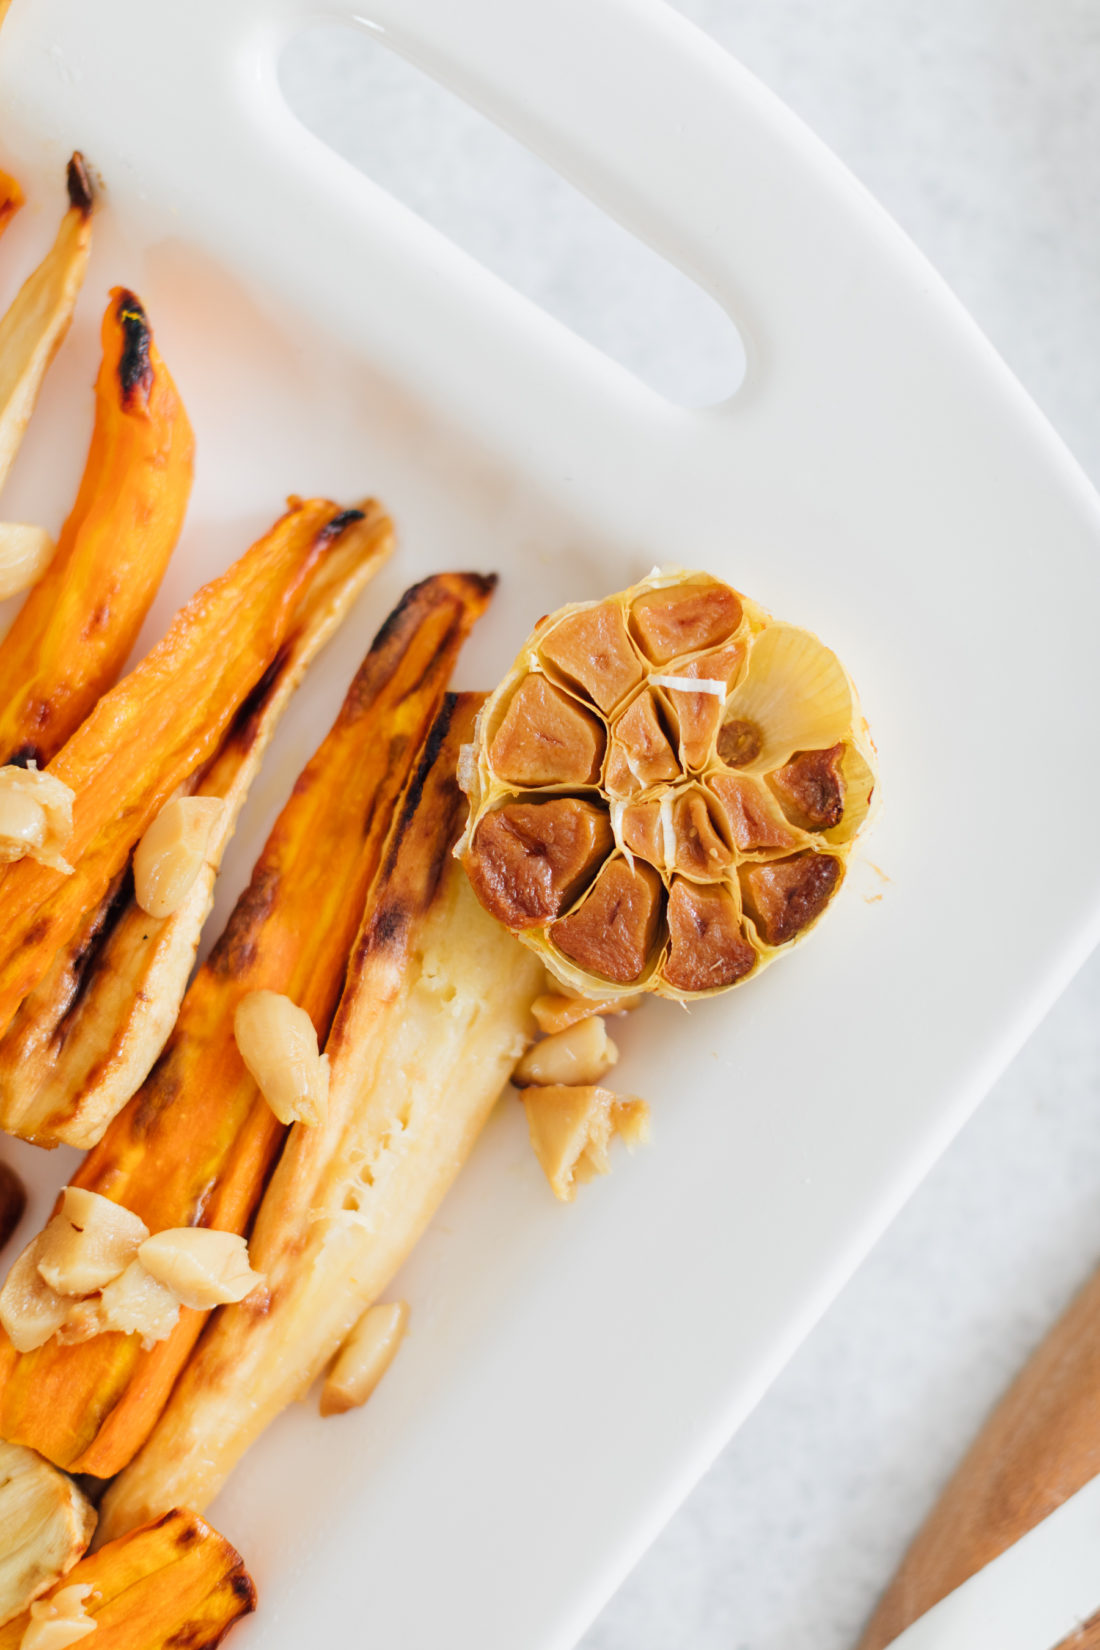 Eva Amurri Martino's Parsnips & Carrots with Pickled Currant Vinaigrette is a great Thanksgiving side dish recipe